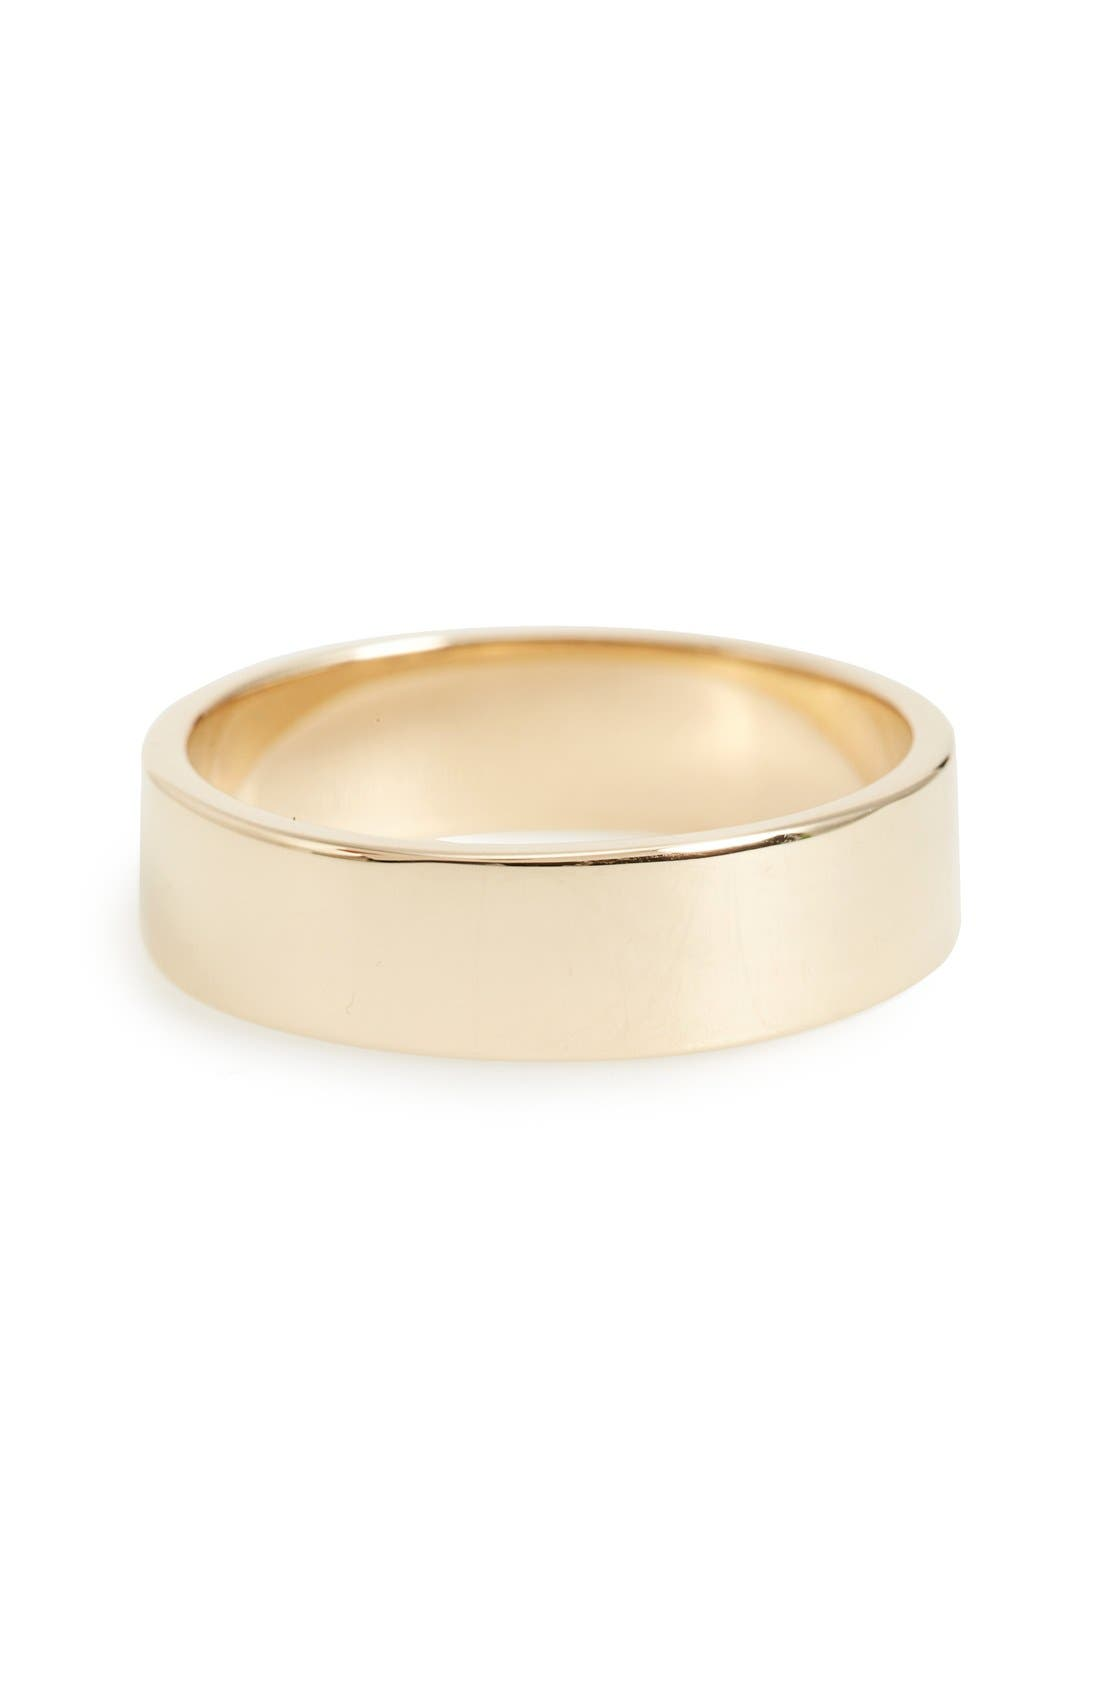 Harmony<sup>®</sup> Flat Classic 5mm Shiny Band Ring,                         Main,                         color, Yellow